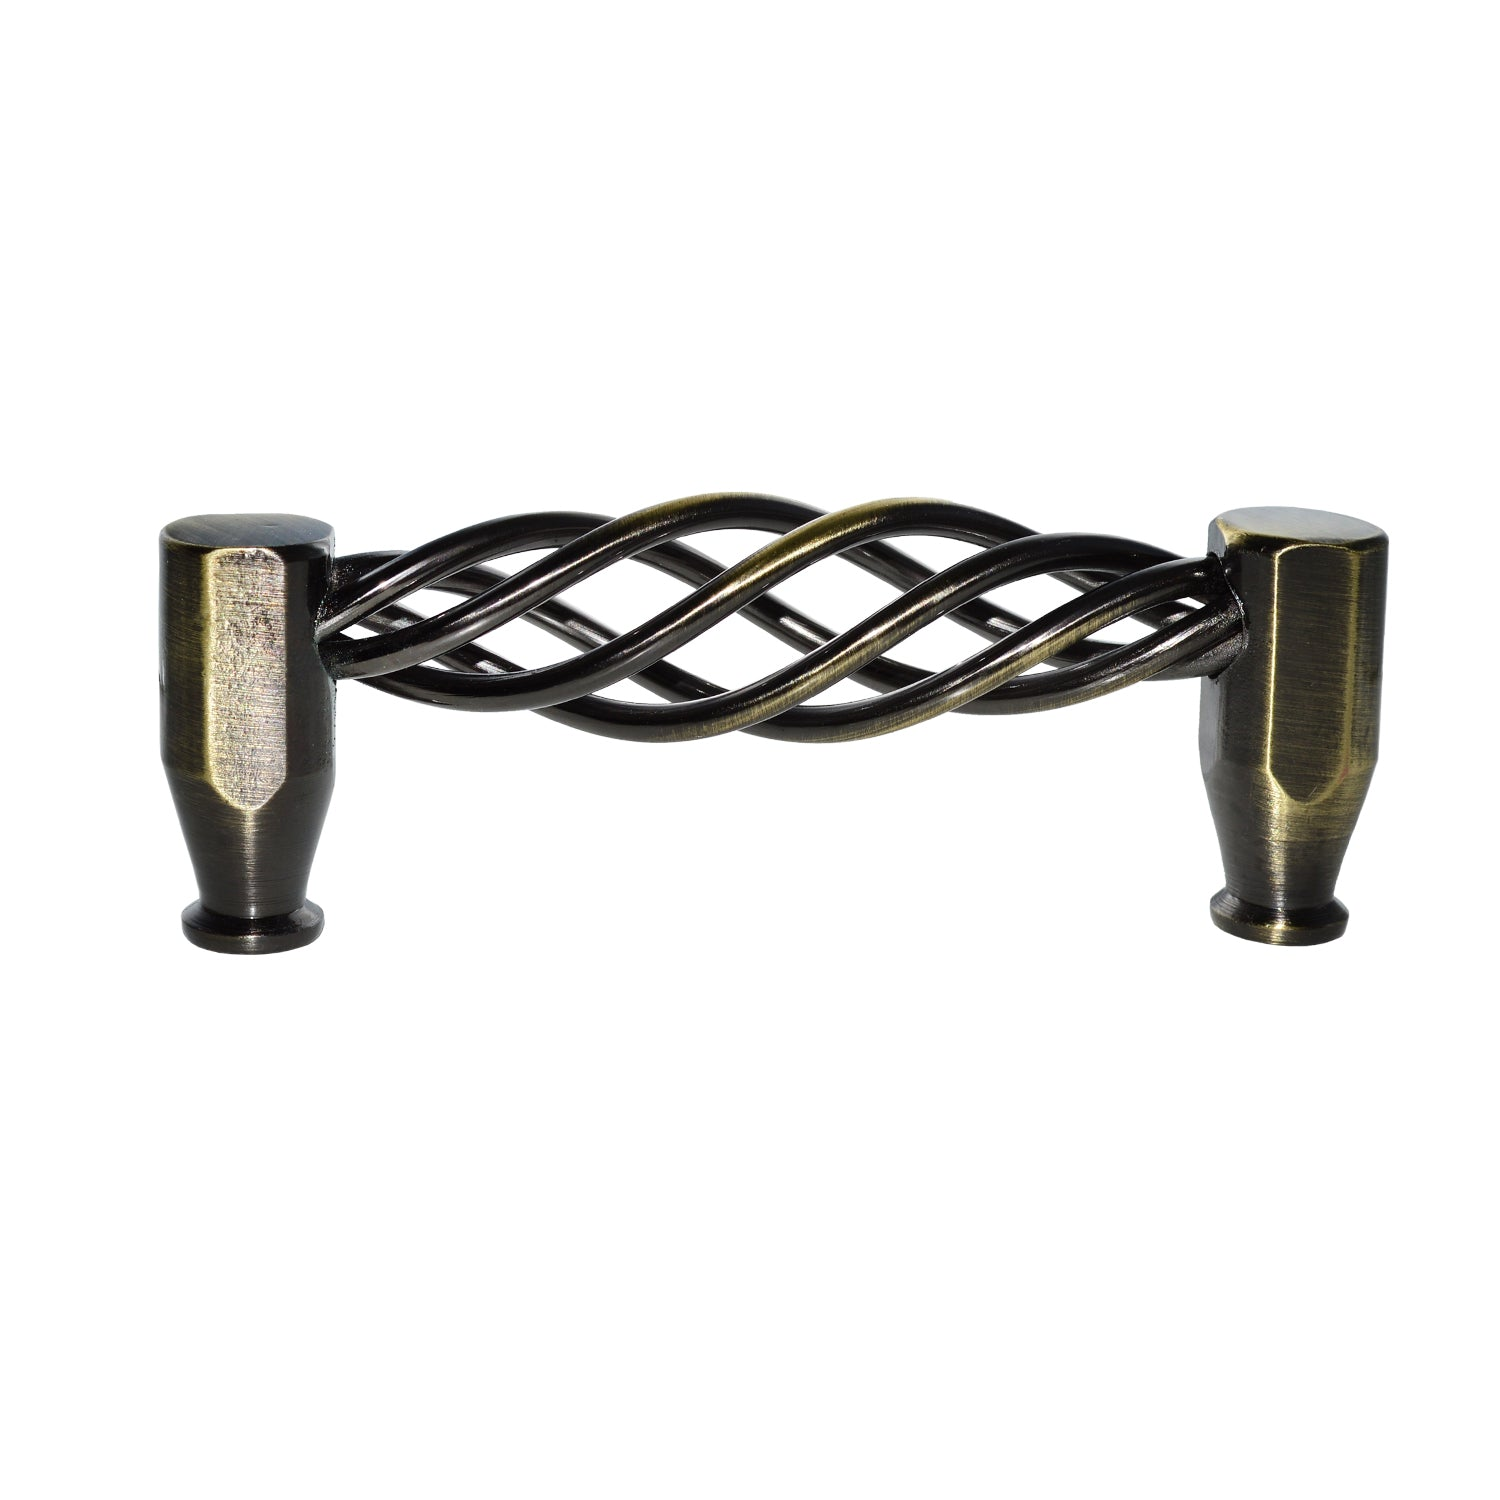 Antique Brass Cabinet Pull - Aire 3-3/4 In. Antique Brass Cabinet Pull - Utopia Alley